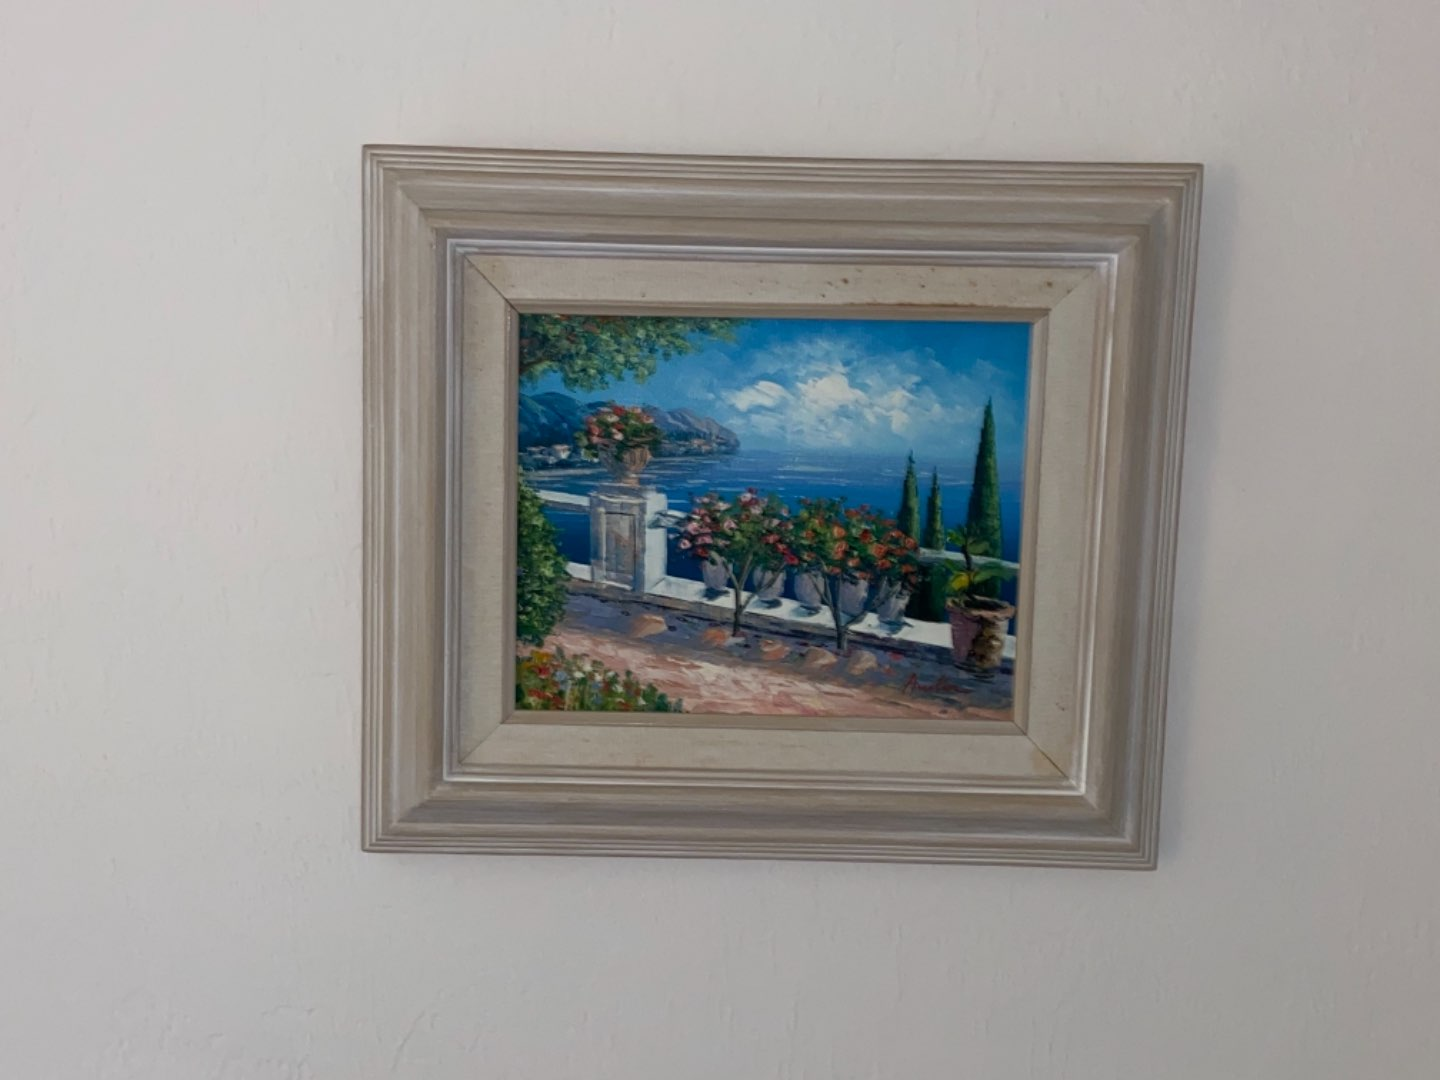 Lot # 212 Landscape Oil on Canvas Painting Signed by Artist Austin